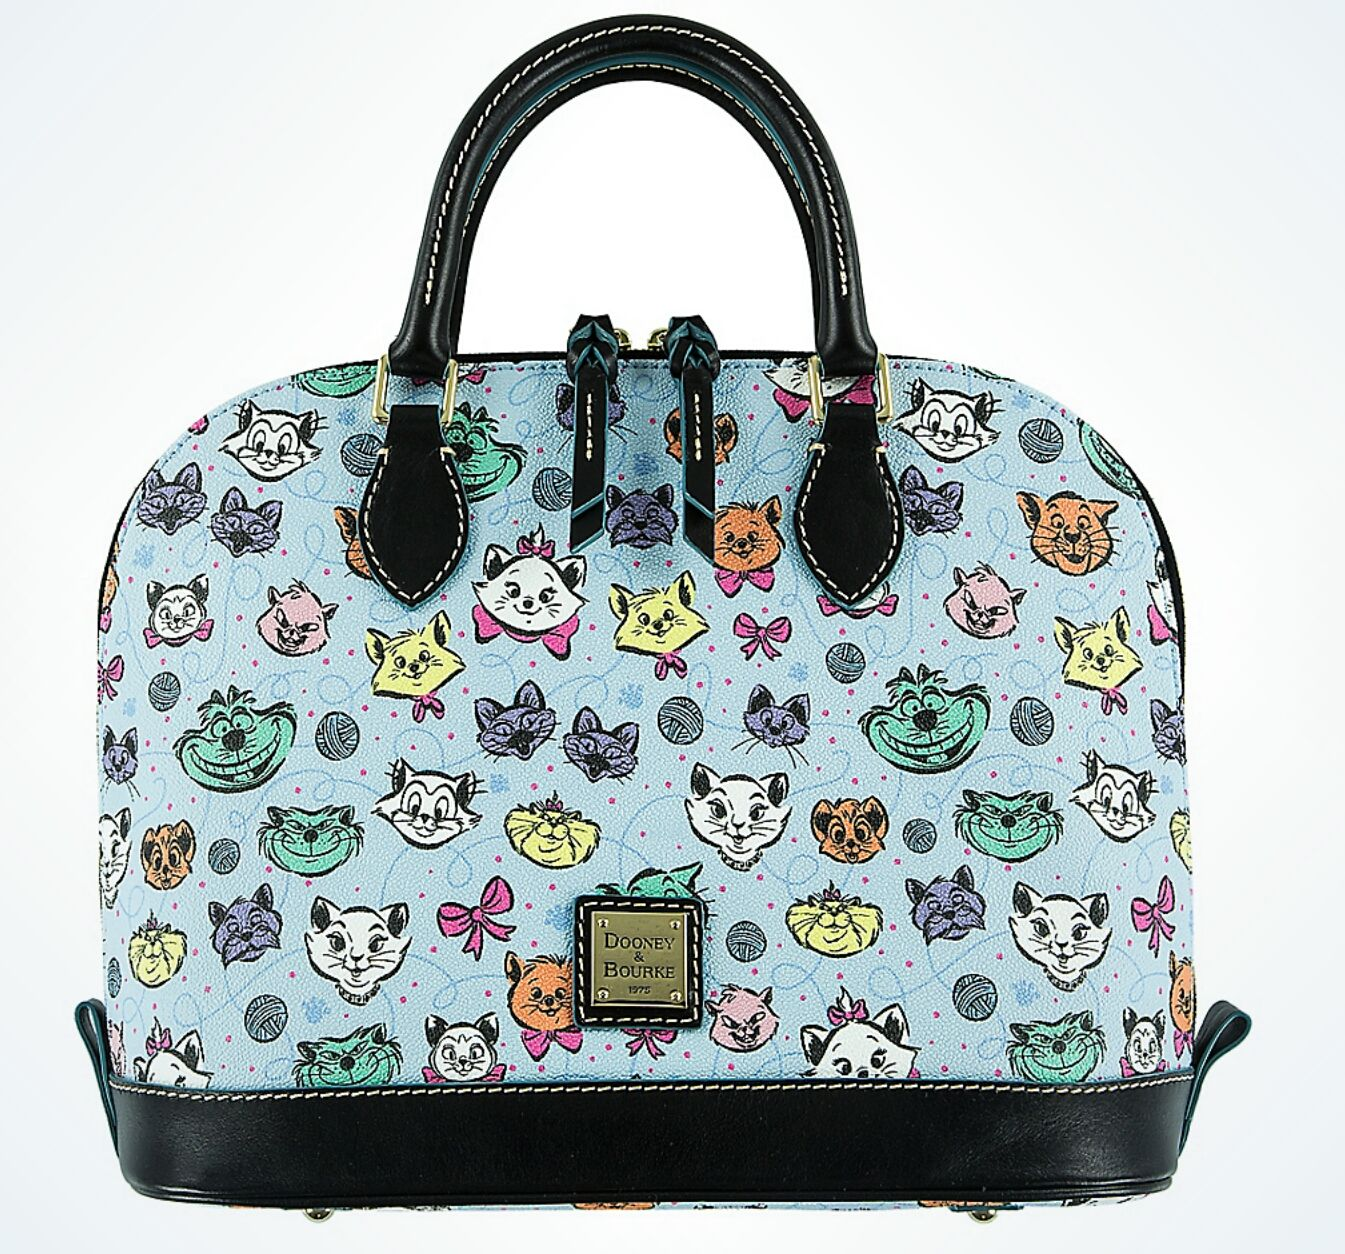 Disney Cats Dooney And Bourke Bags Available Today